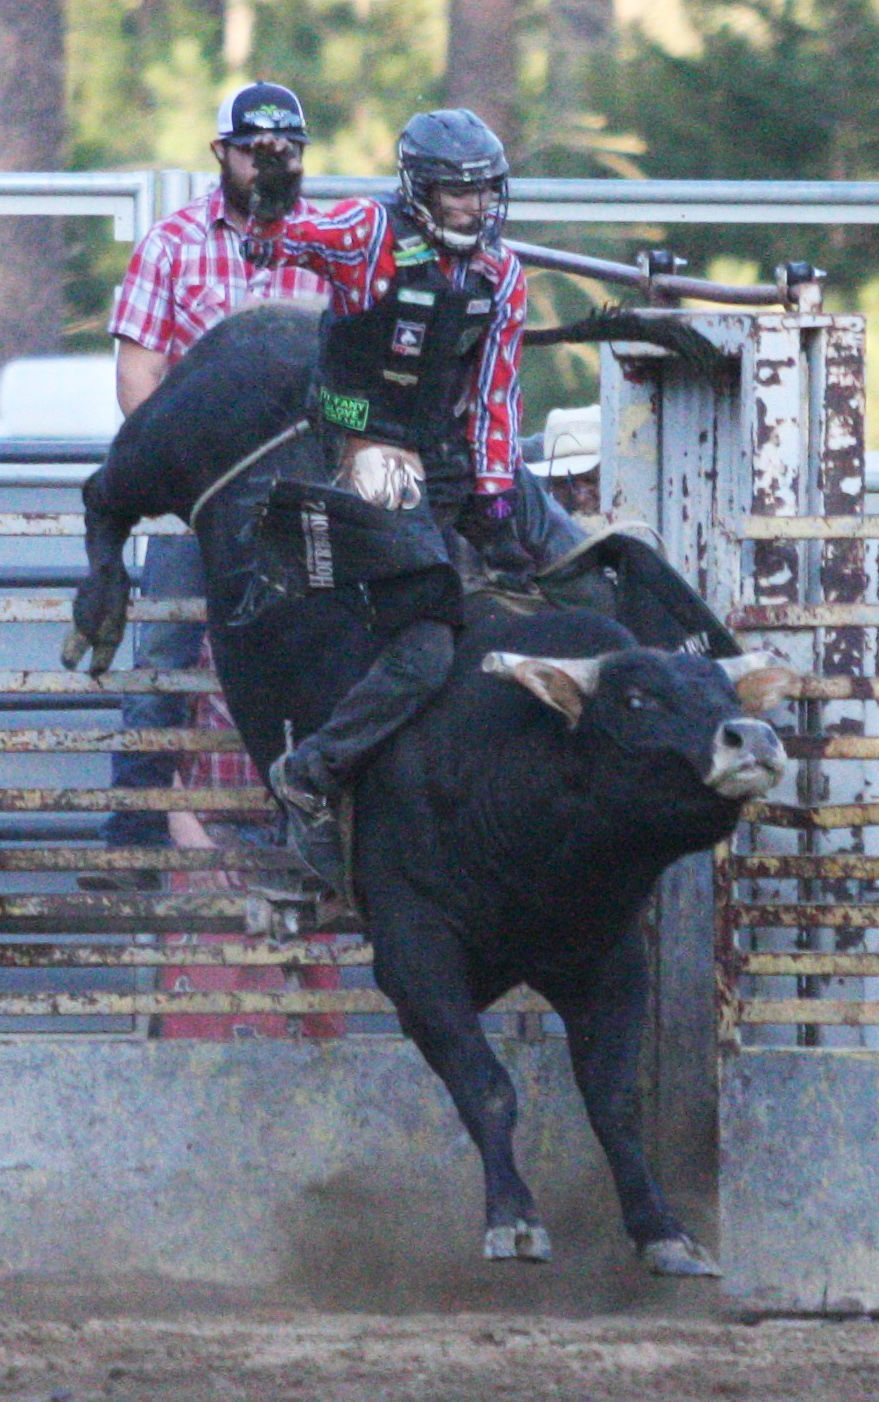 Winners Emerge From Cle Elum Roundup Sports